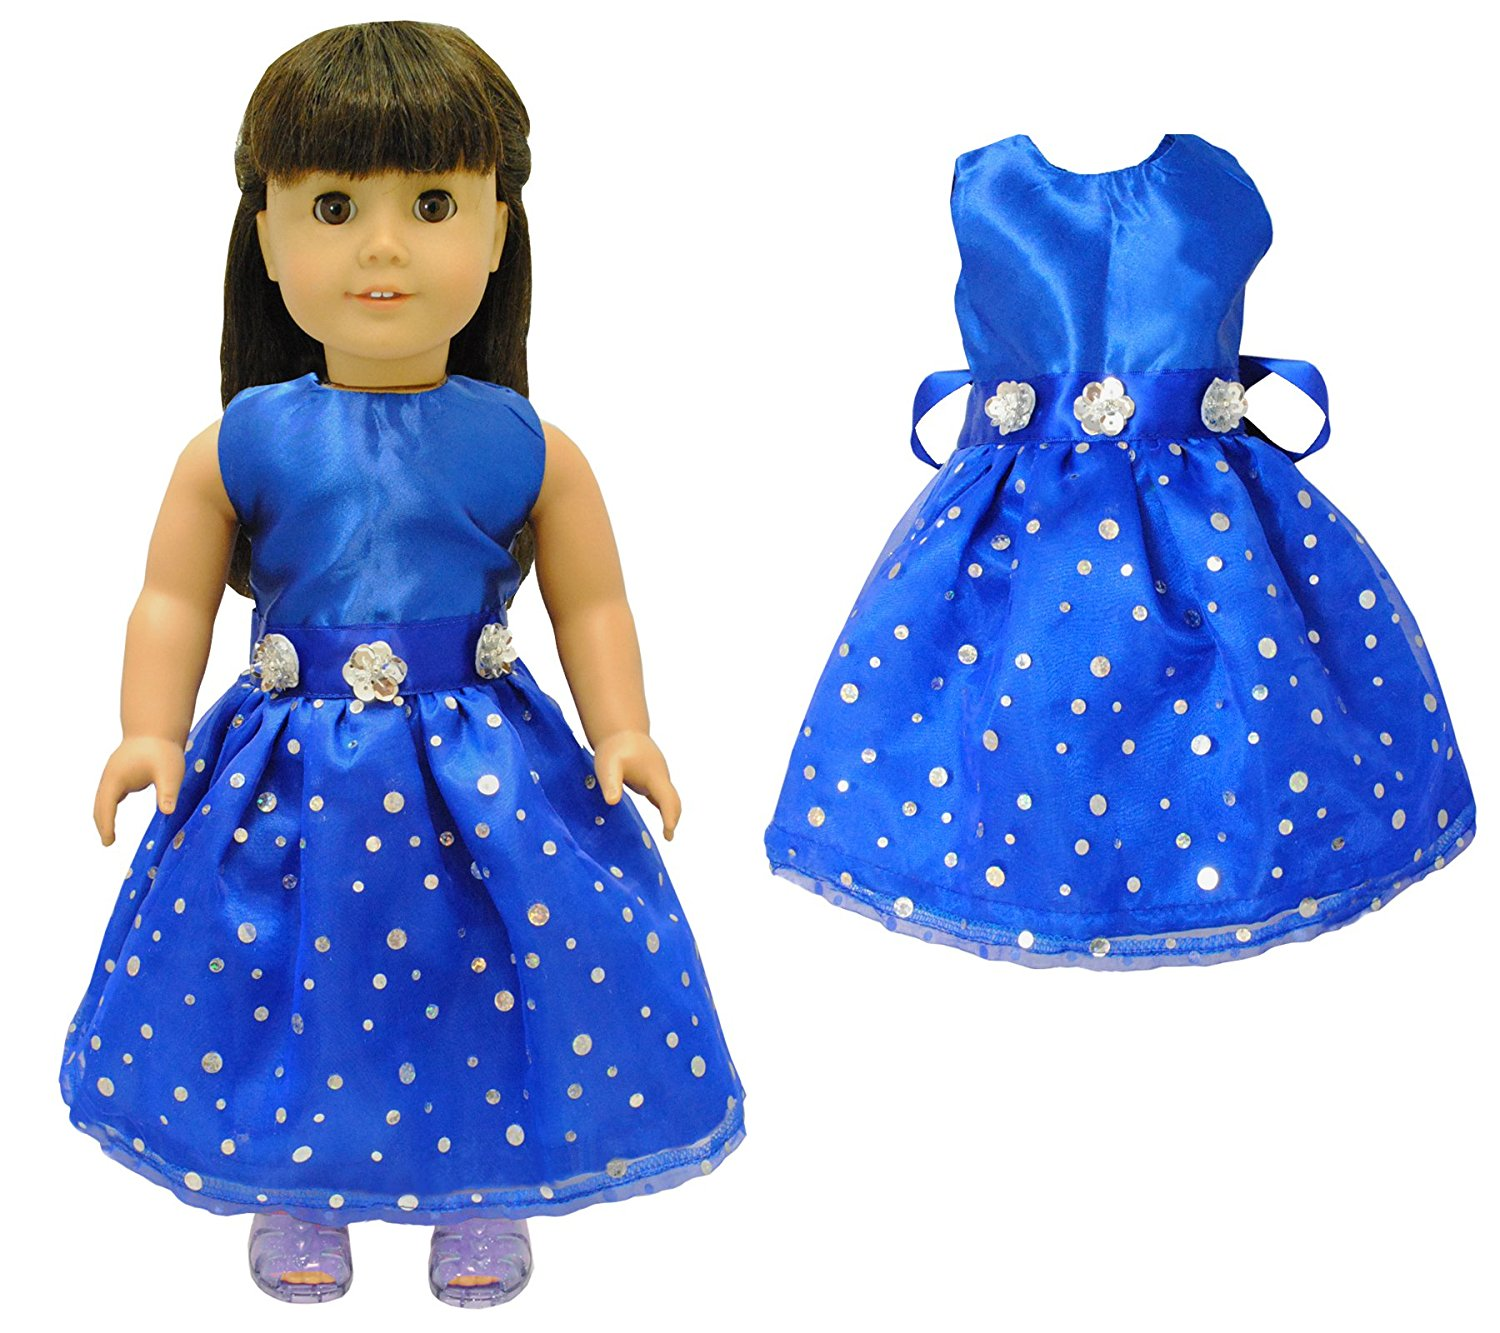 Baby Coat Doll Clothes Doll Clothes For 18 Inch Doll BLUS FDNIUS